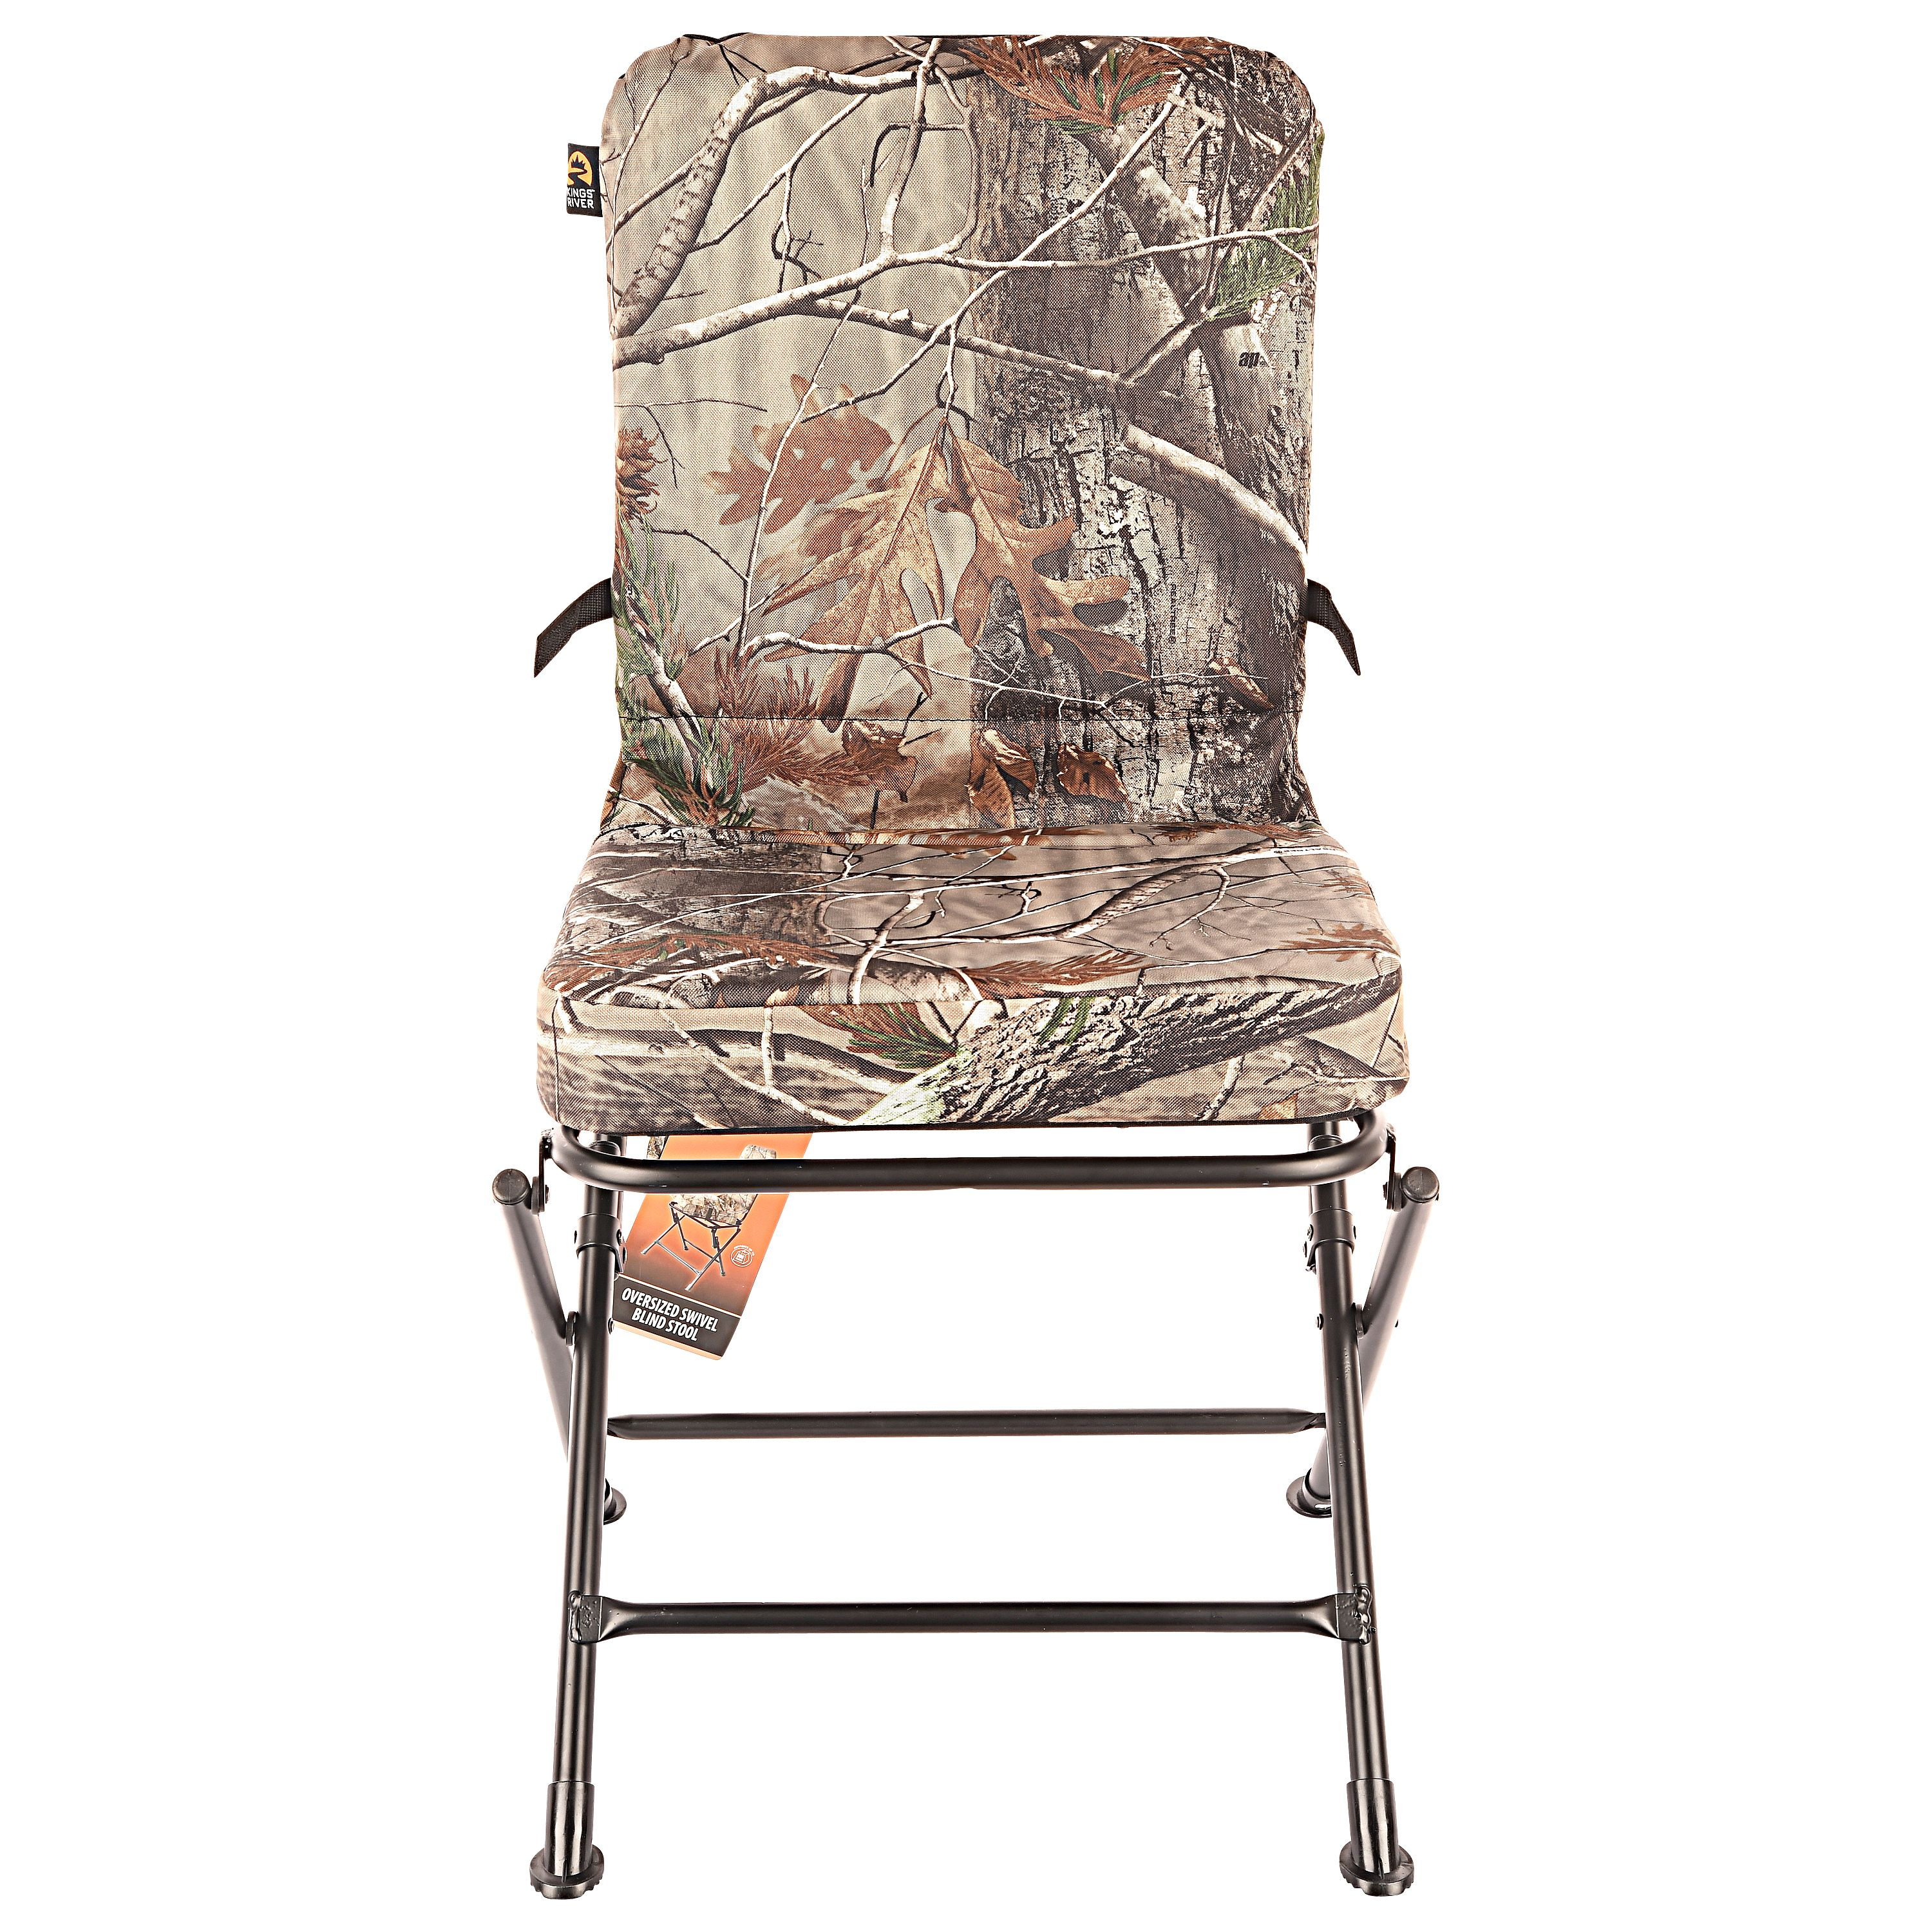 Swivel Camouflage Blind Chair